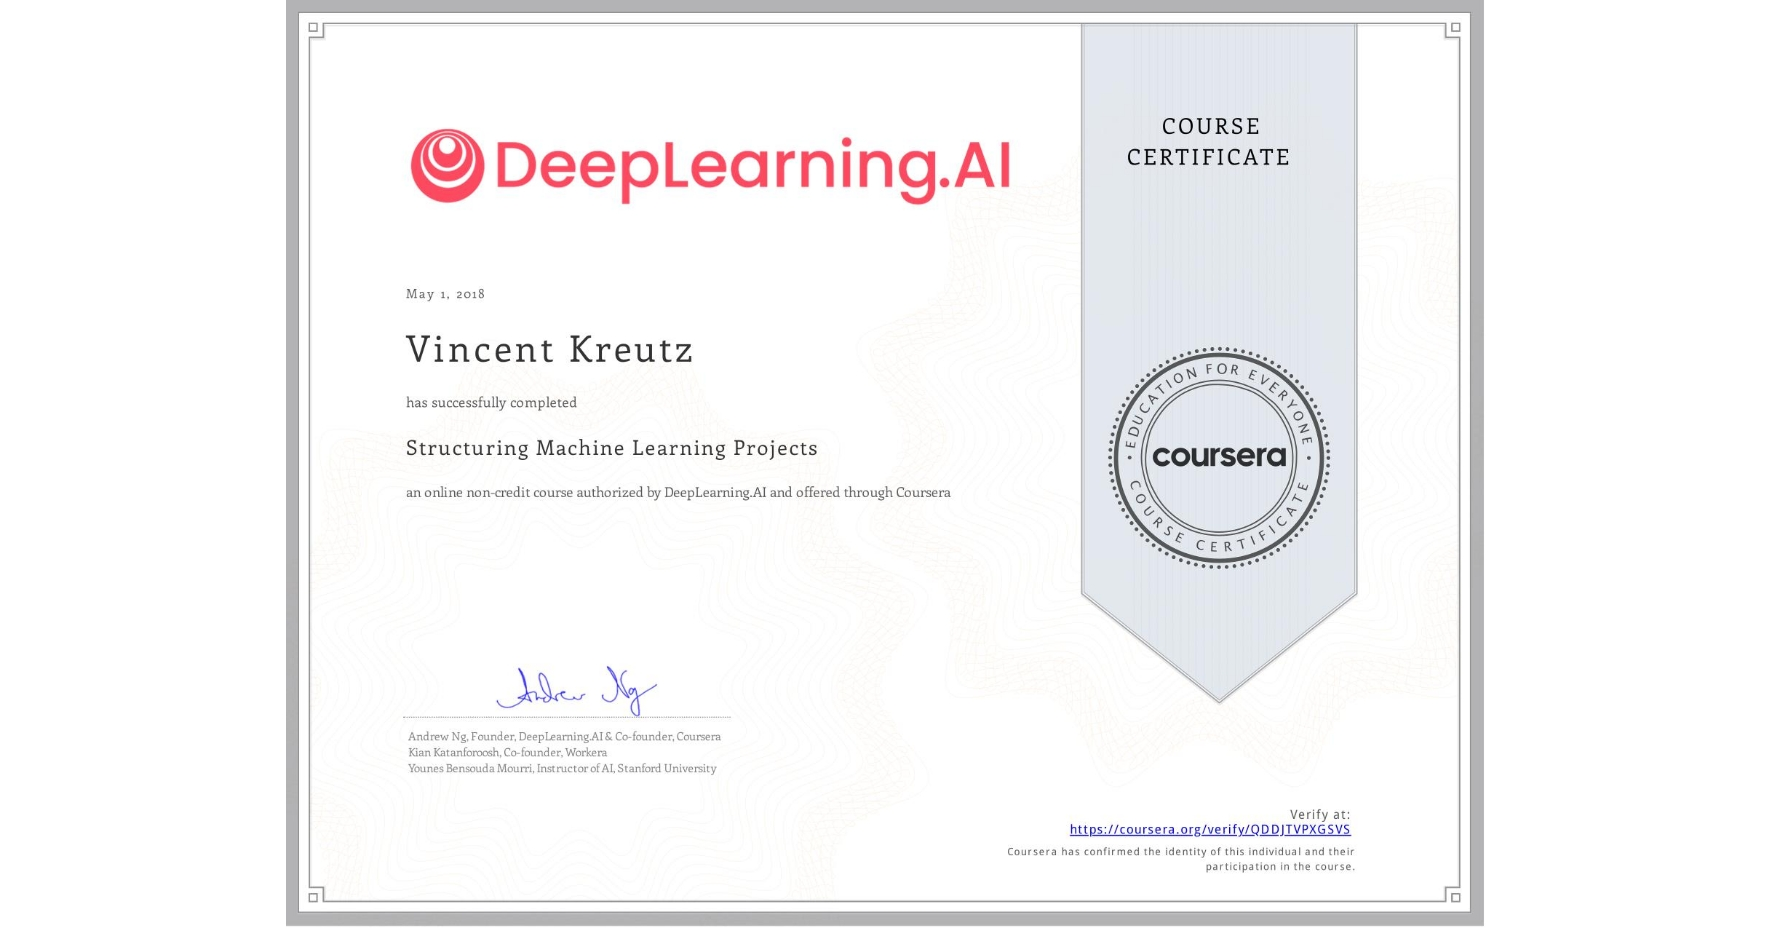 View certificate for Vincent Kreutz, Structuring Machine Learning Projects, an online non-credit course authorized by DeepLearning.AI and offered through Coursera